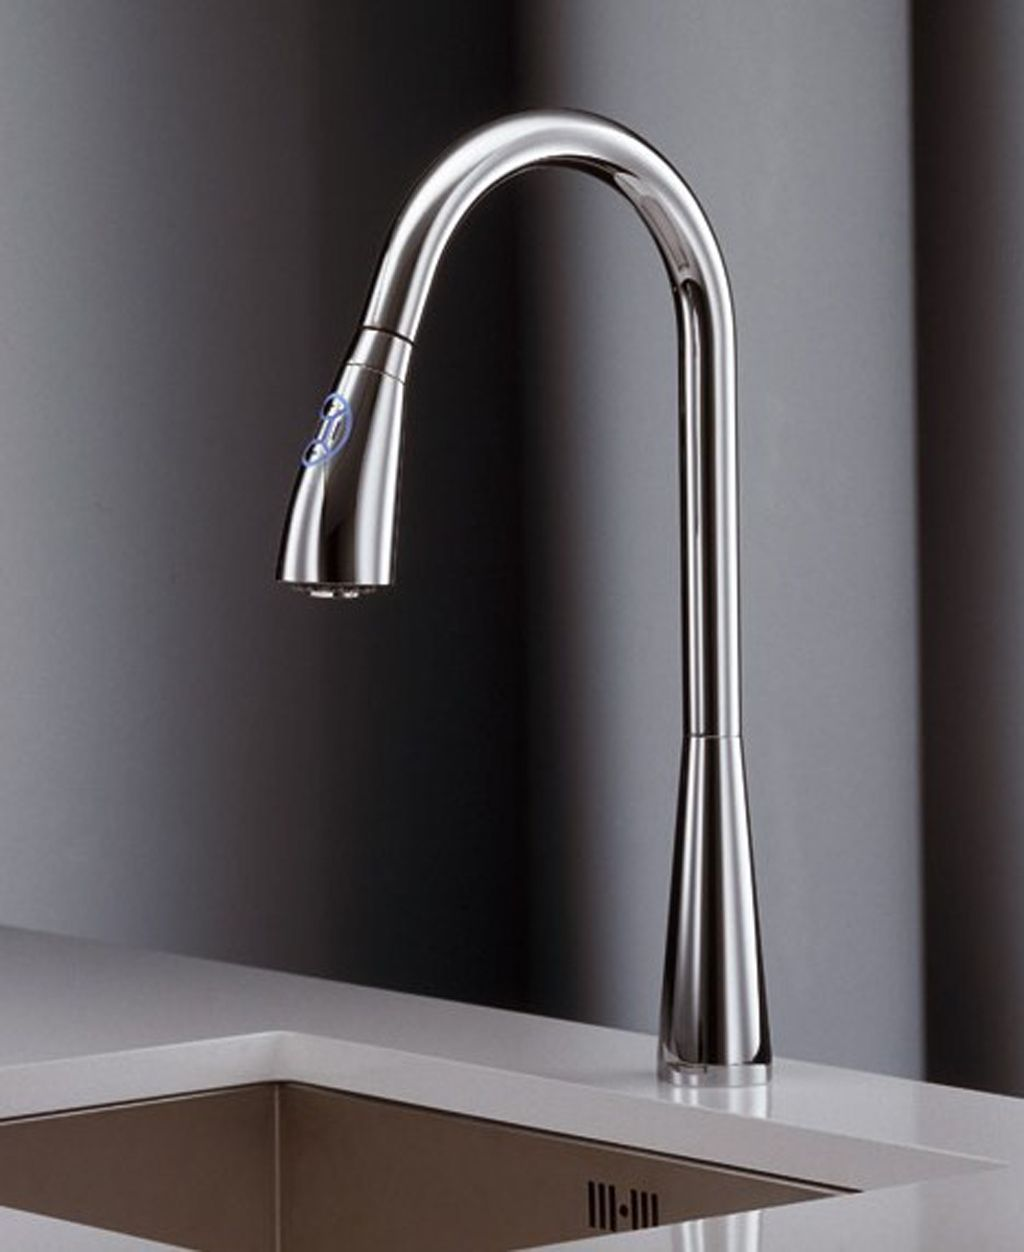 the modern kitchen faucets is minimalist and pure design, with